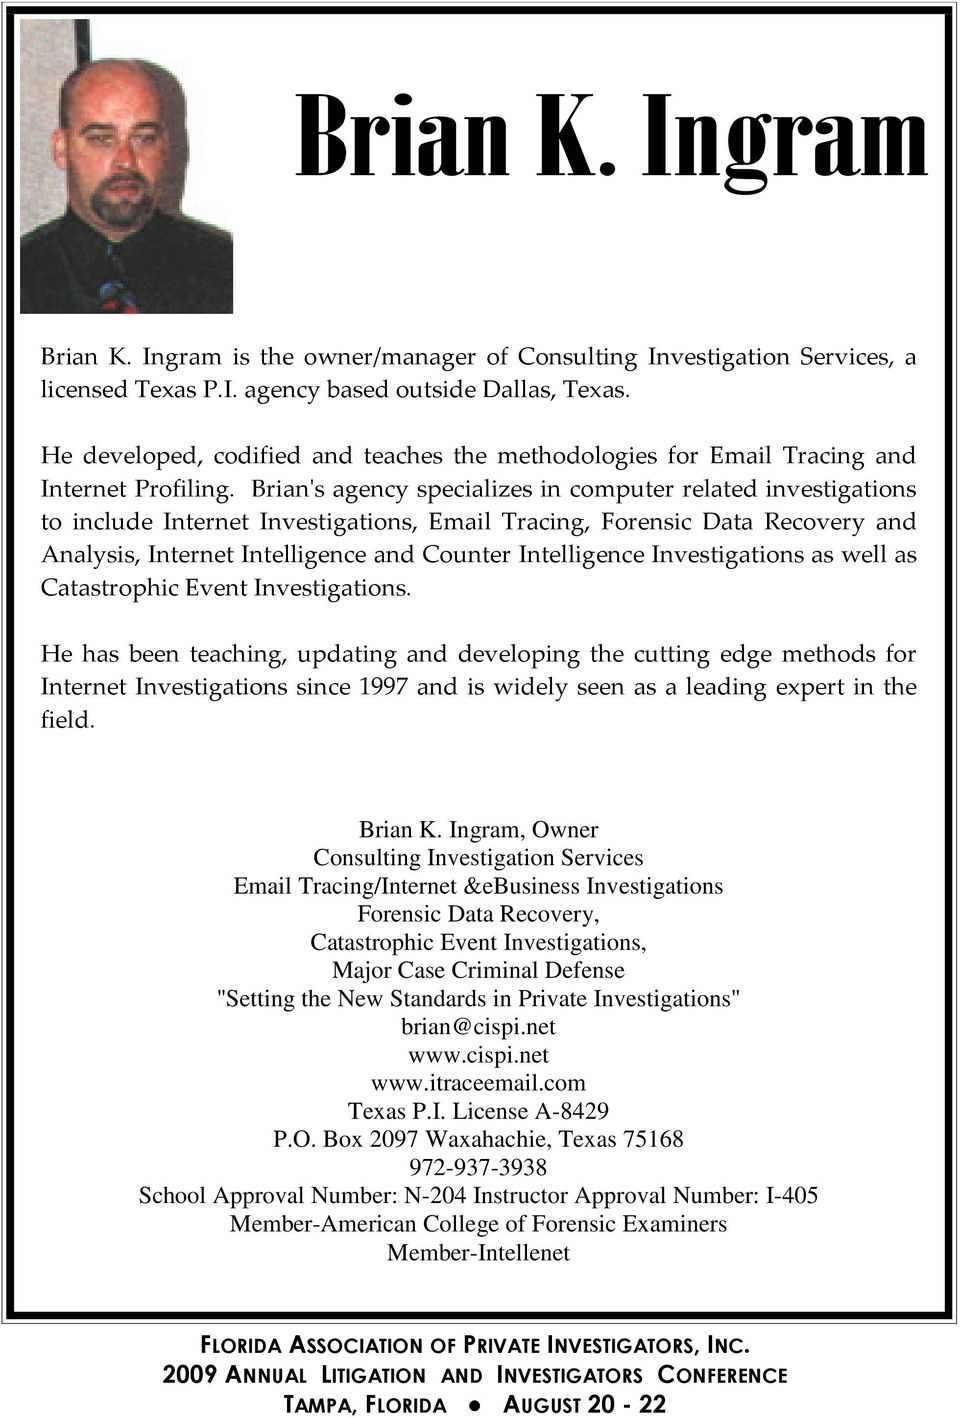 Brian's agency specializes in computer related investigations to include Internet Investigations, Email Tracing, Forensic Data Recovery and Analysis, Internet Intelligence and Counter Intelligence